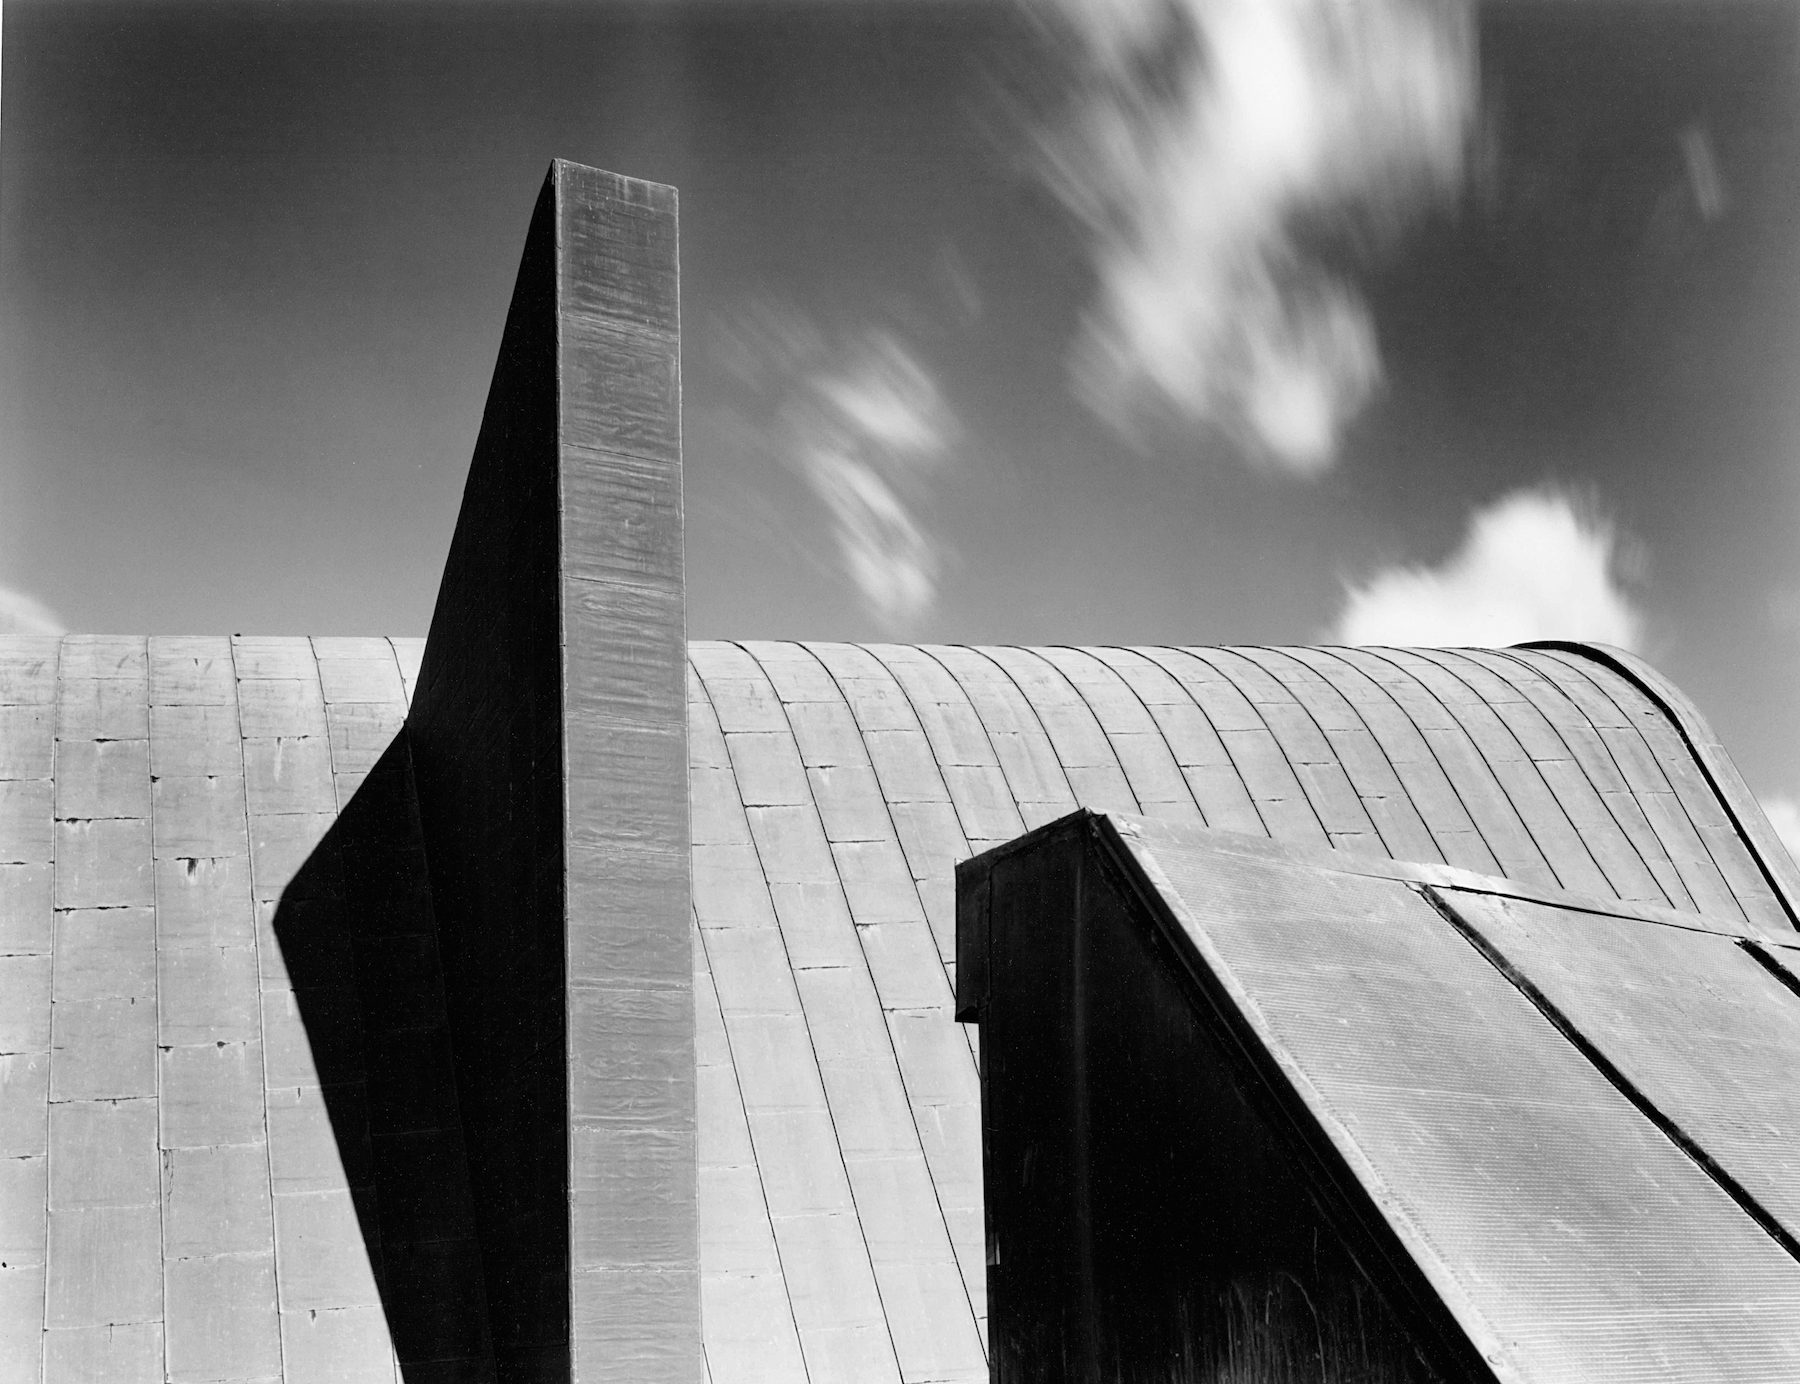 [MyEmiliaRomagna] Dialogues between Architecture and Nature: Alvar Aalto in Riola